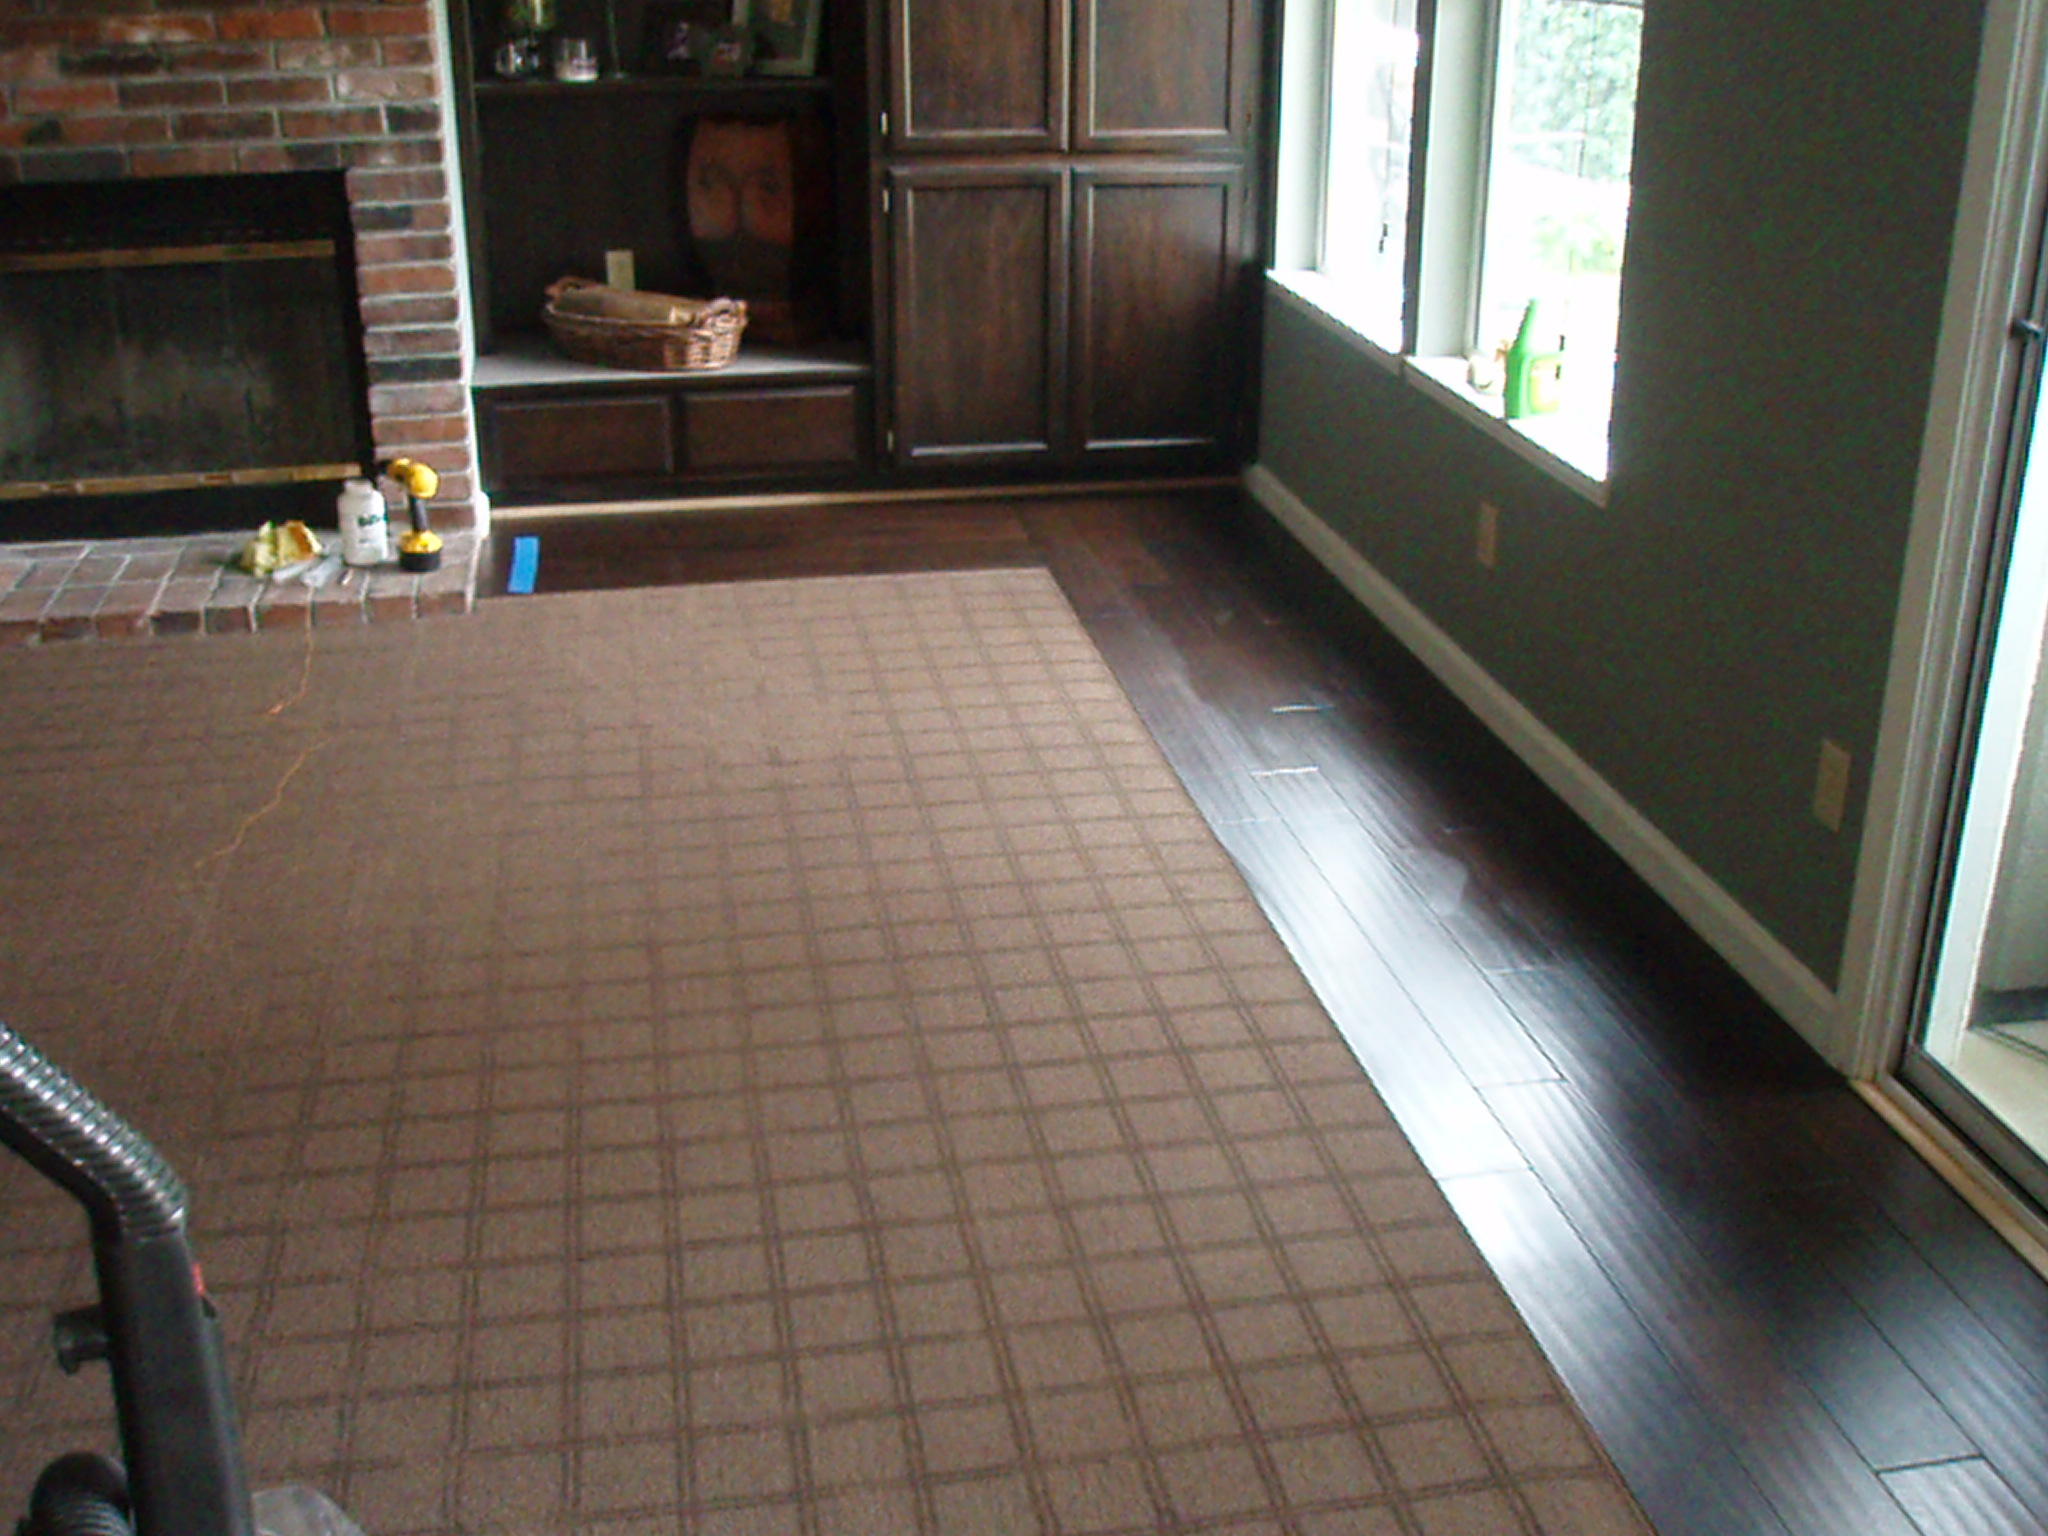 Vince parker flooring rancho cordova ca 95670 angies list for Carpet flooring